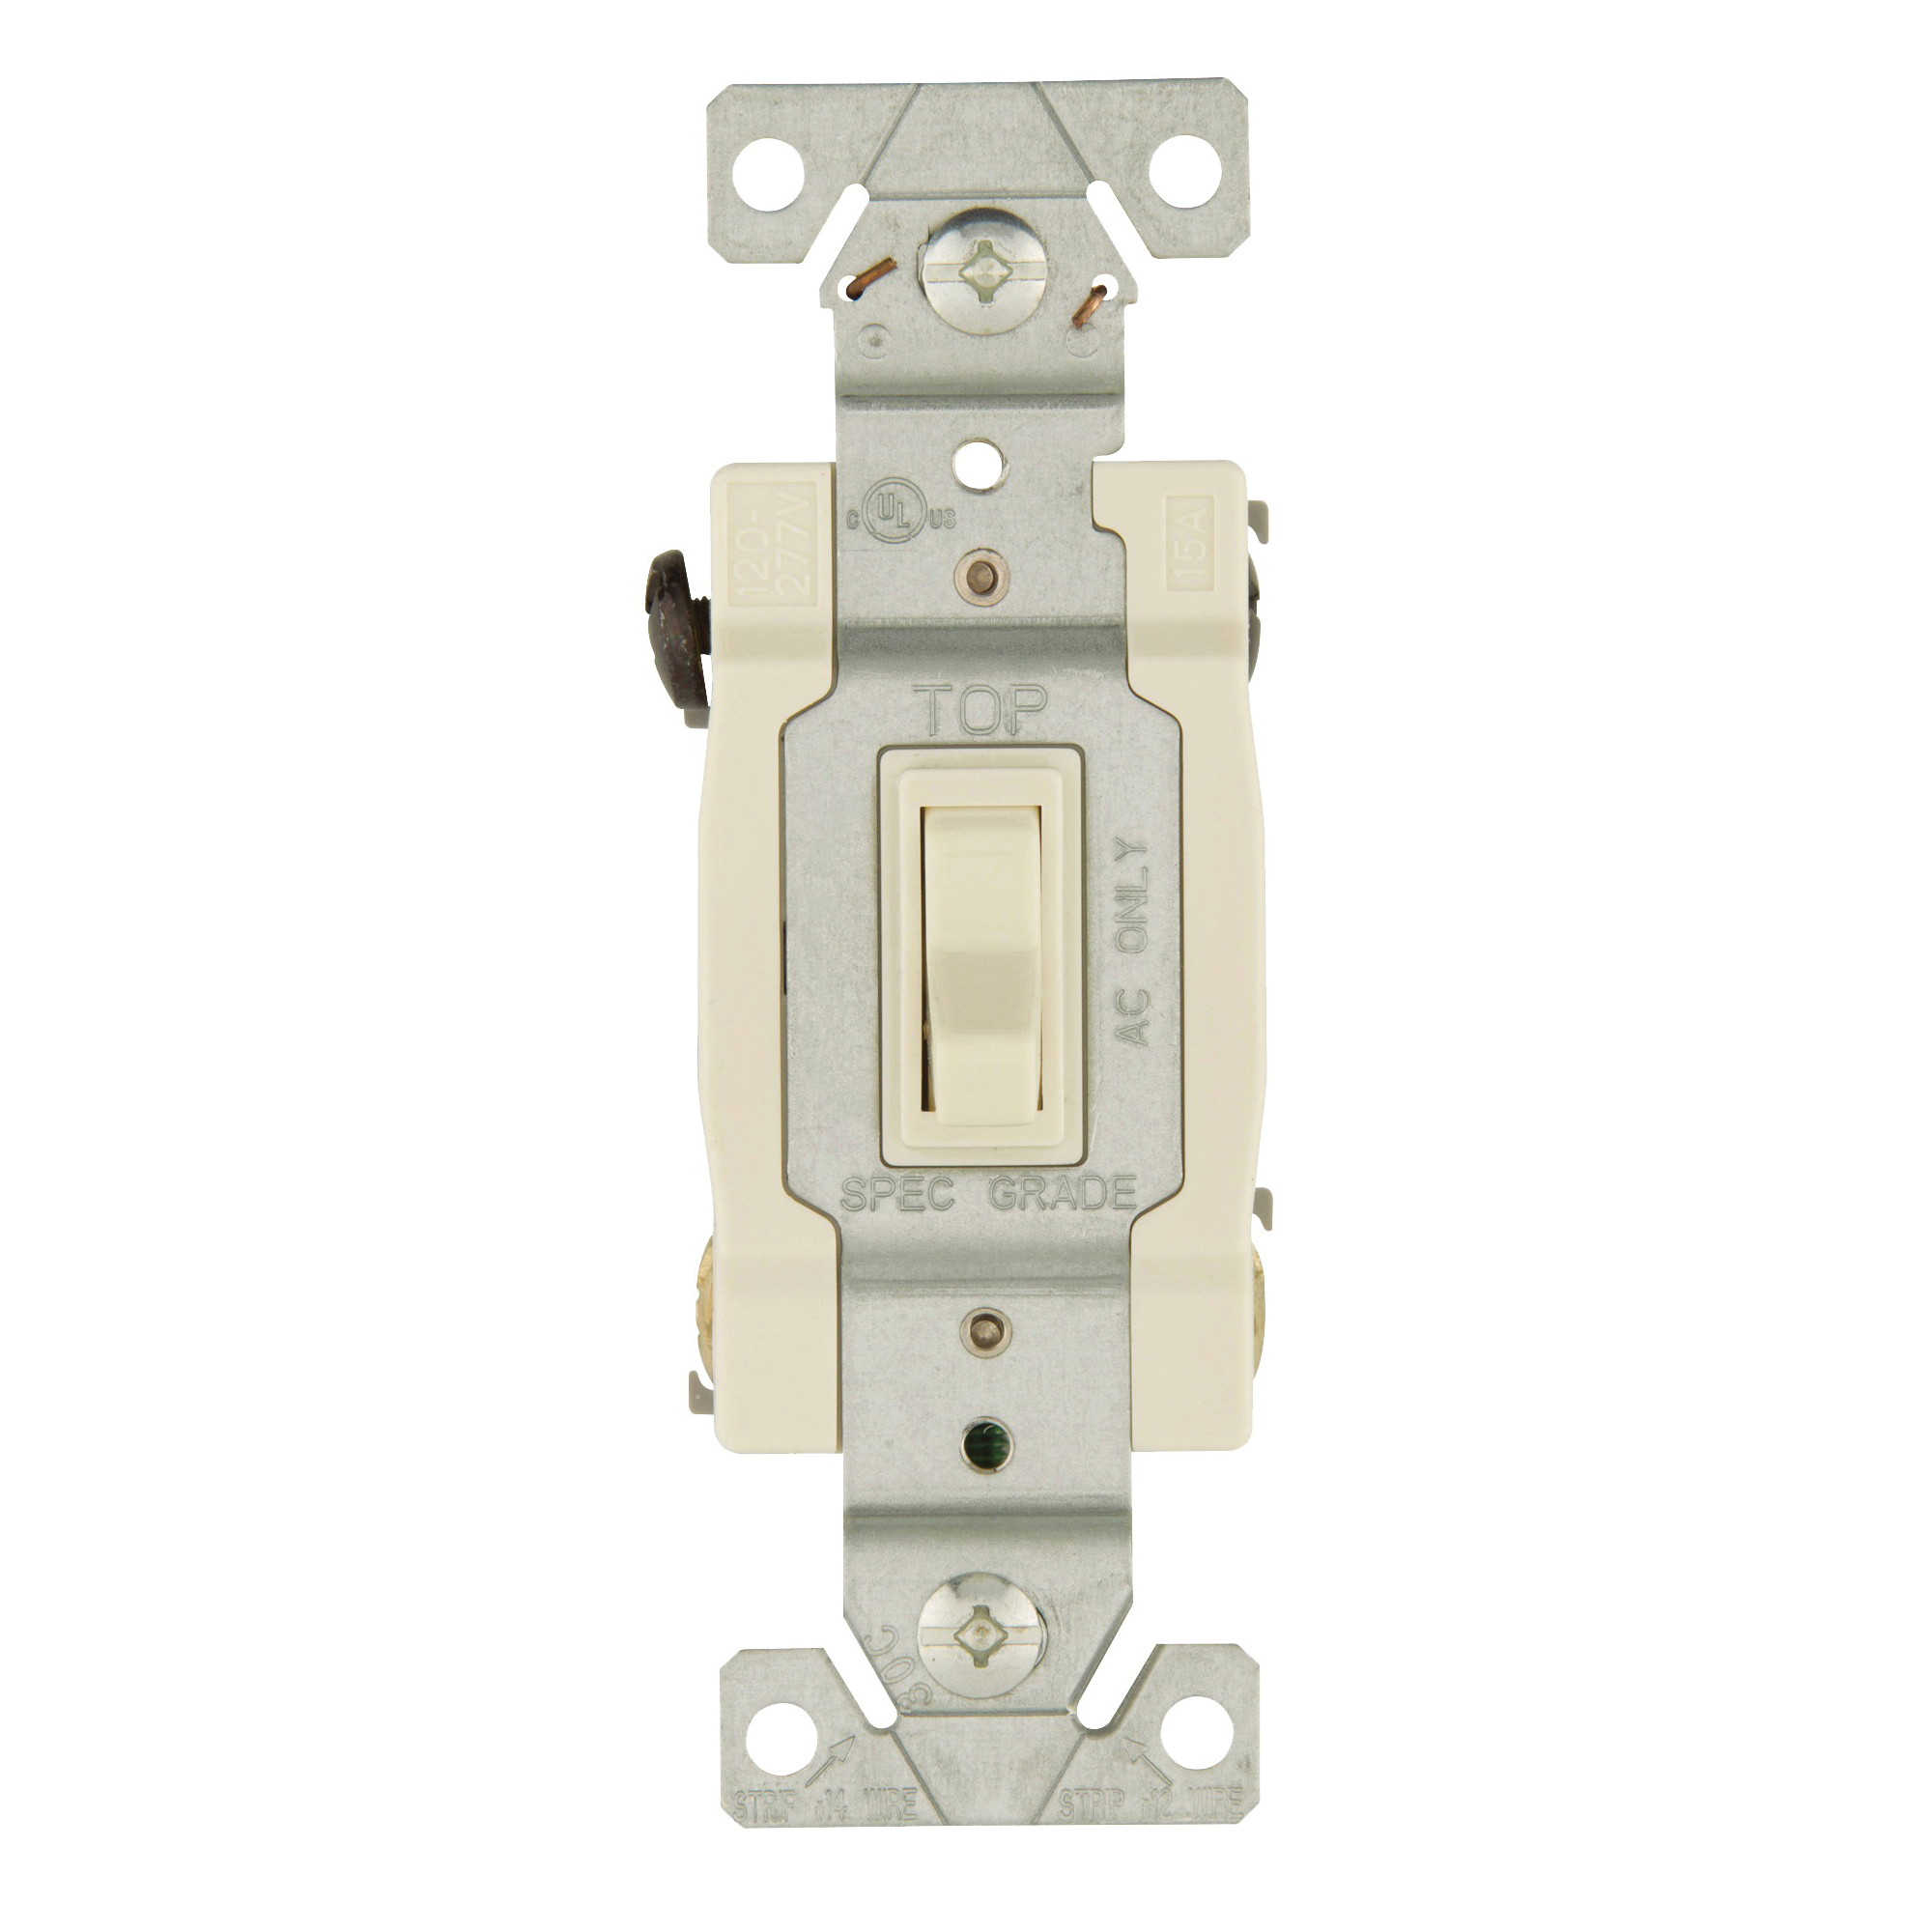 Picture of Eaton Wiring Devices 1242-7LA-BOX Switch, 15 A, 120 V, 4-Way, Lead Wire Terminal, Thermoplastic Housing Material